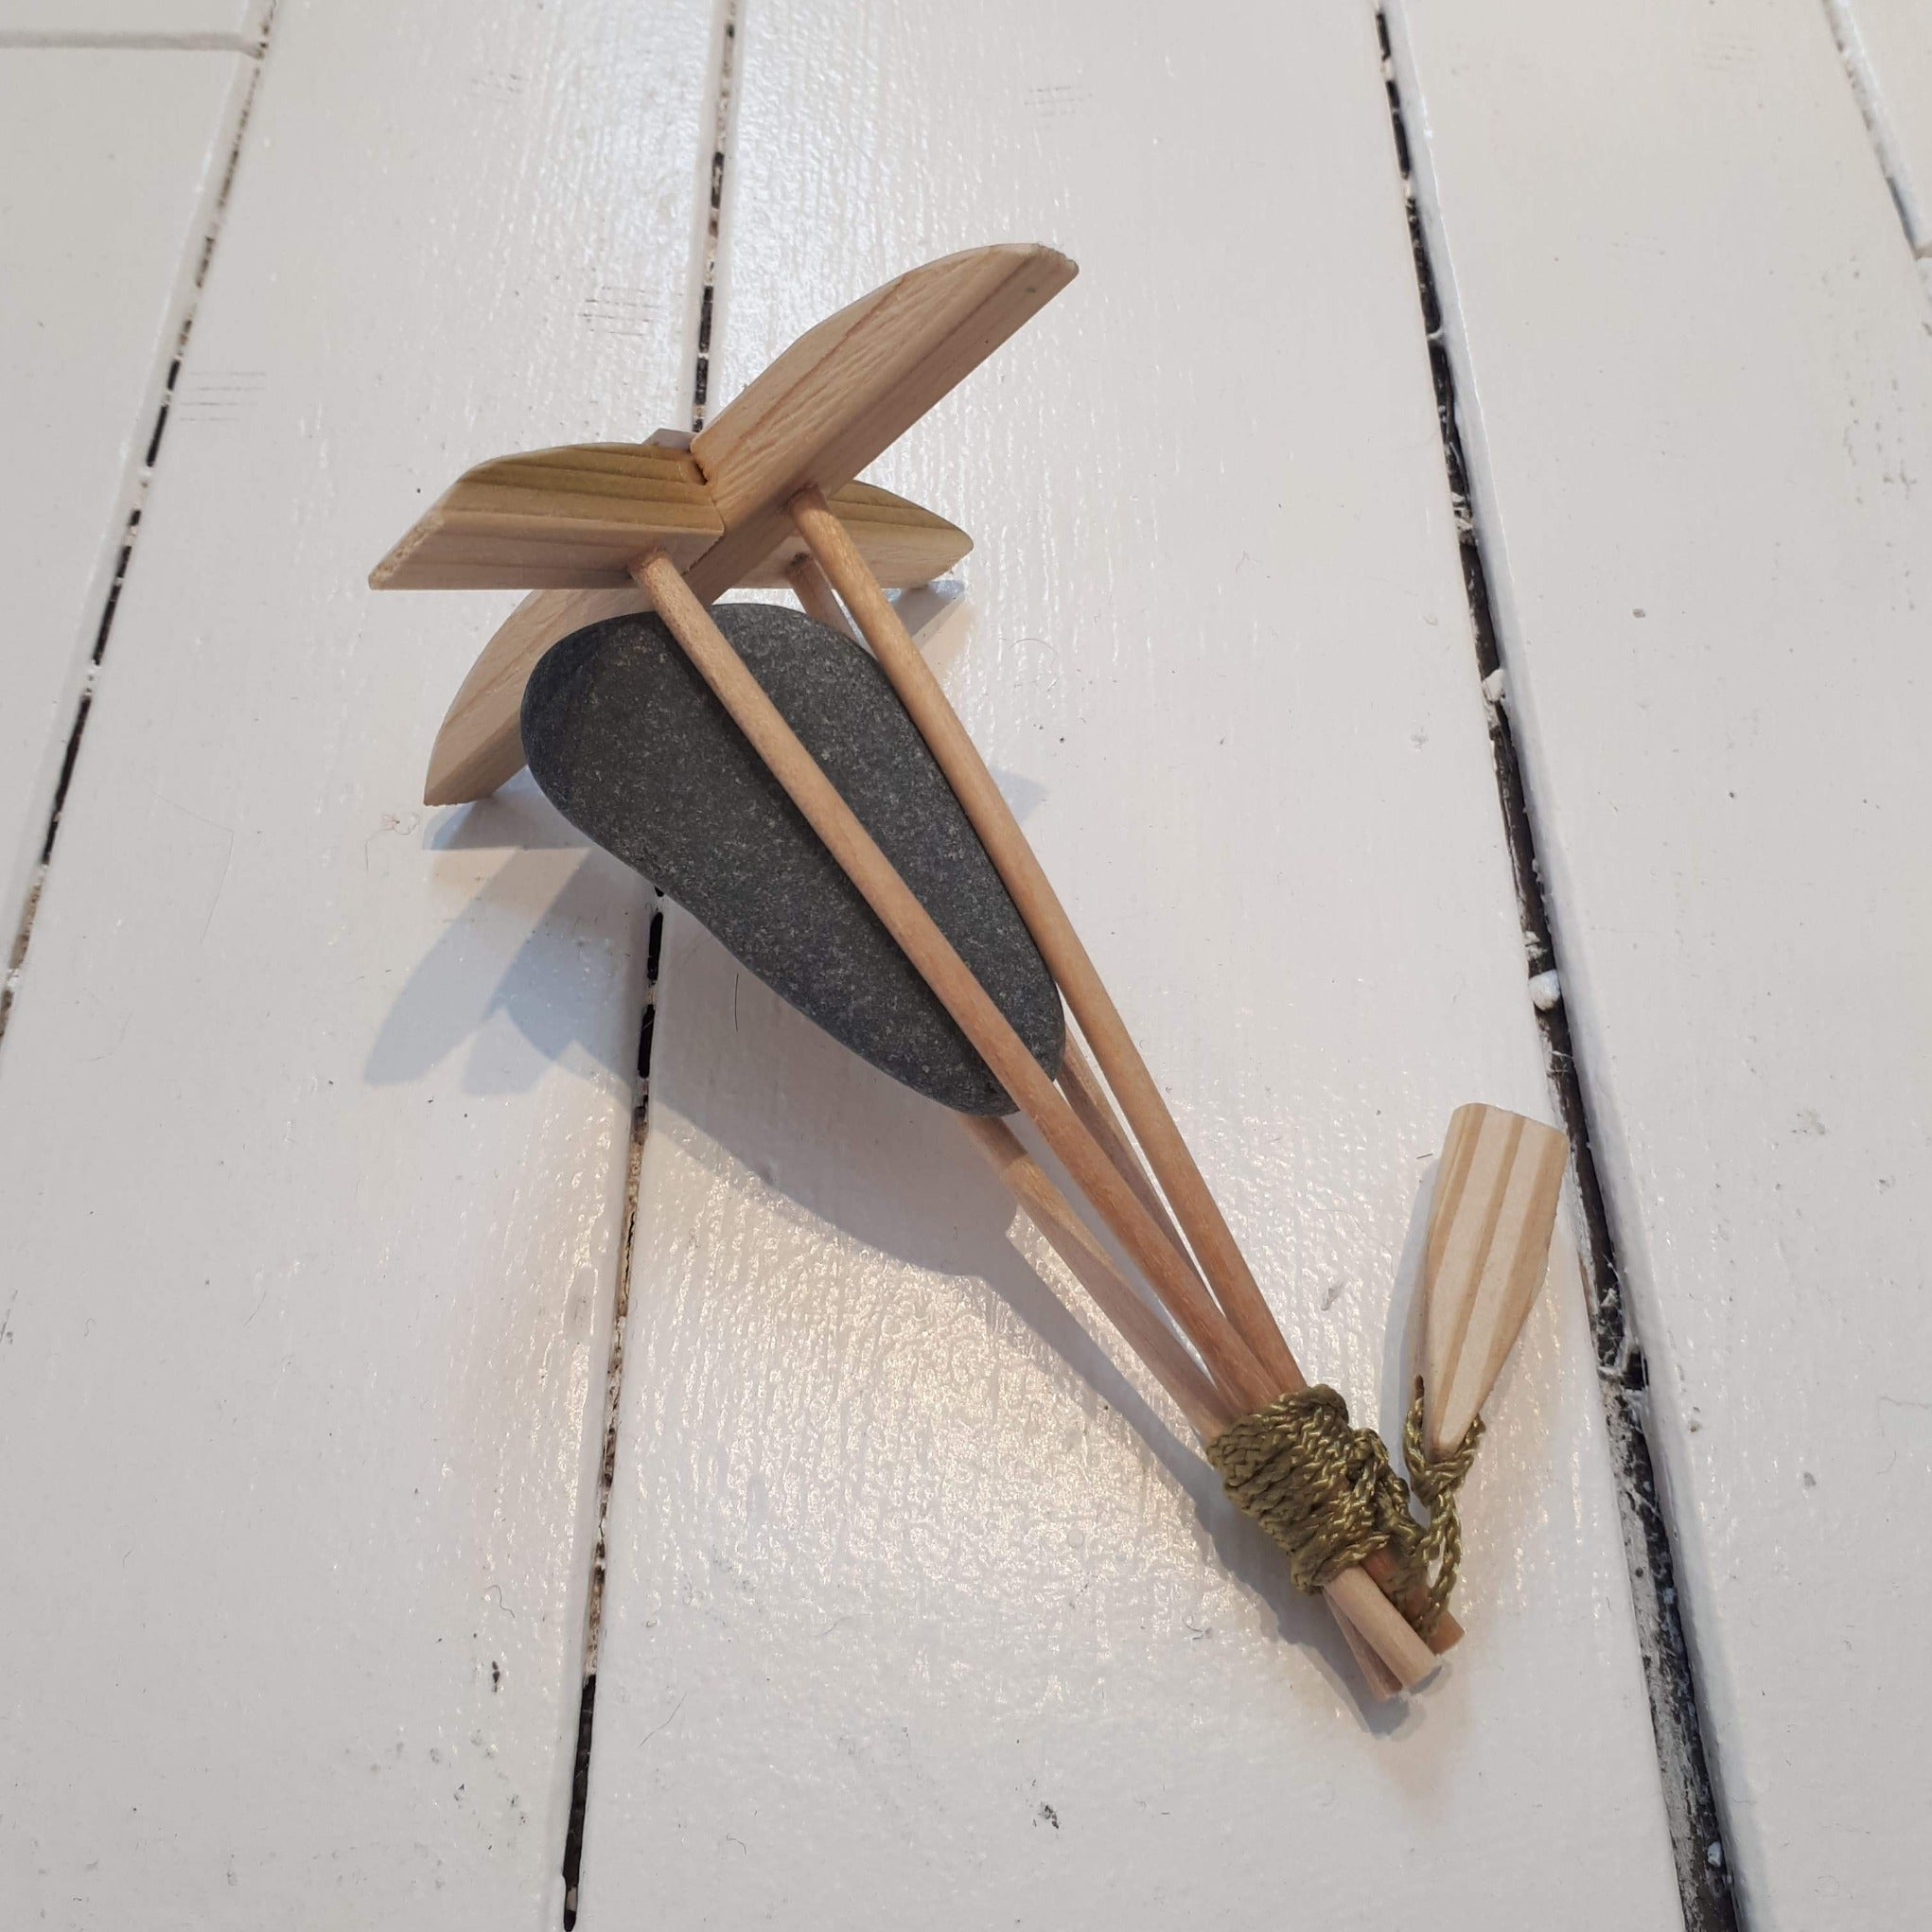 miniature killick with beach stone and wooden sticks